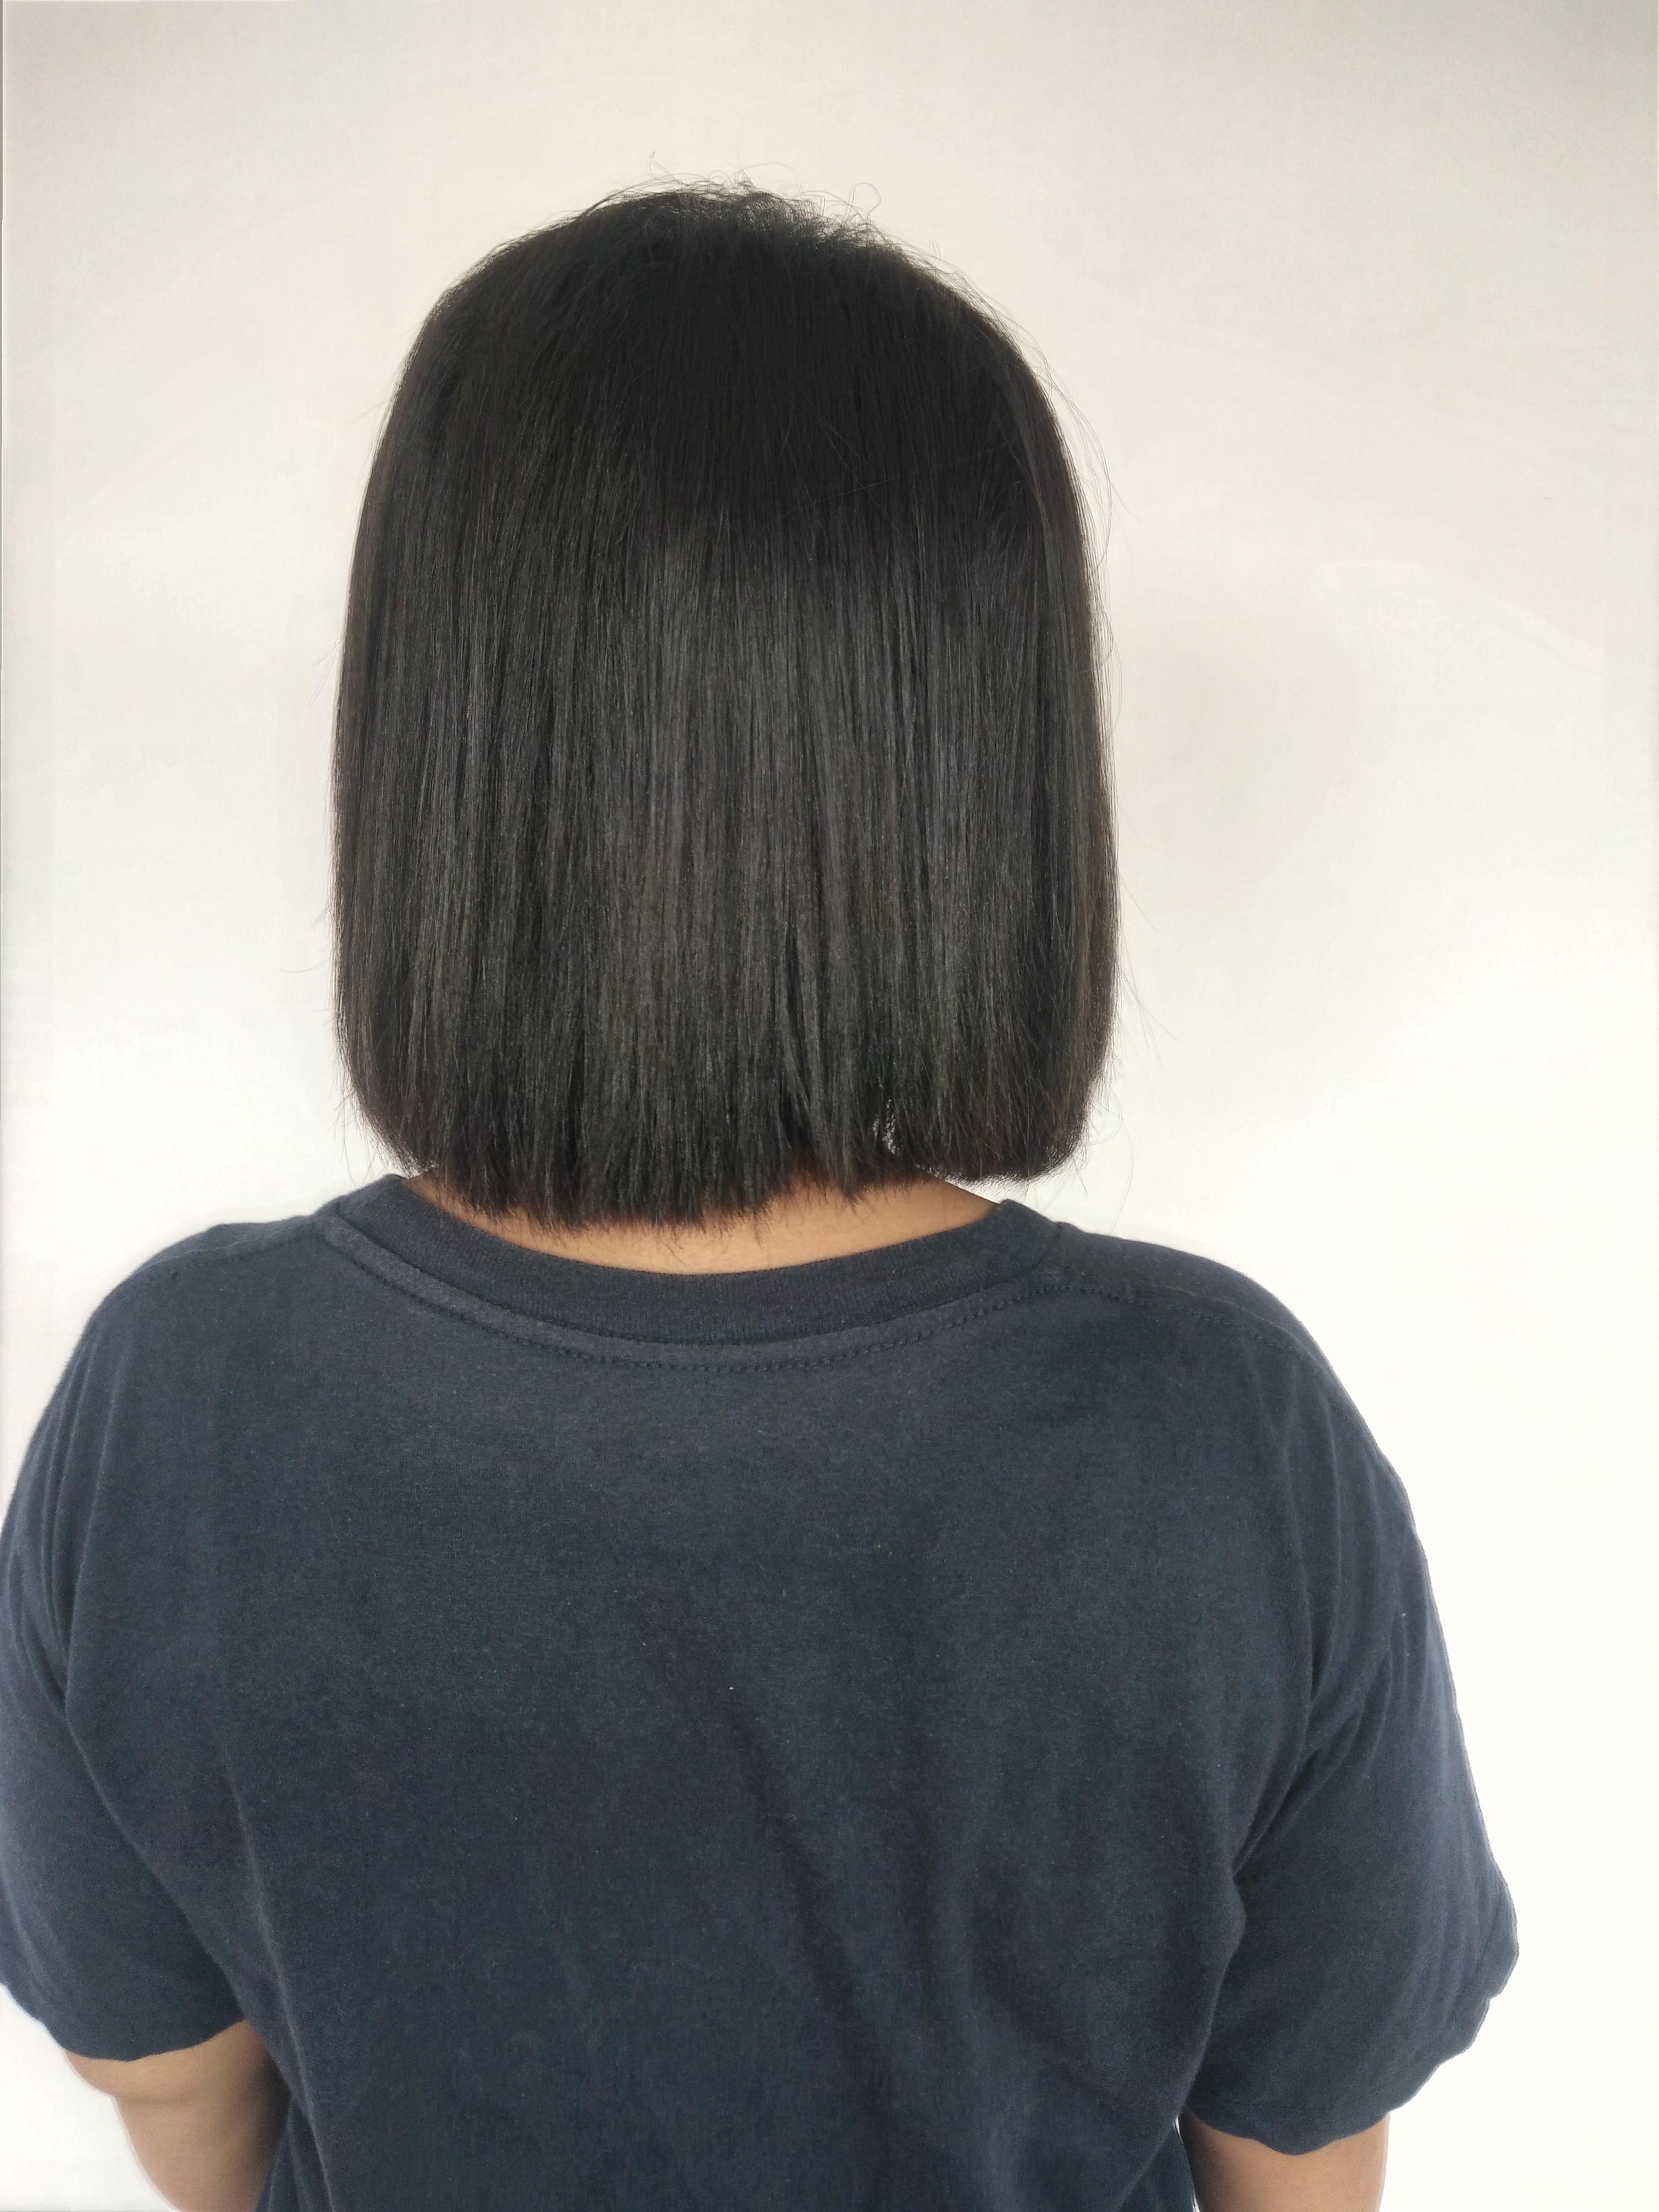 File Back View Of Woman With Short Black Hair 1 Jpg Wikimedia Commons